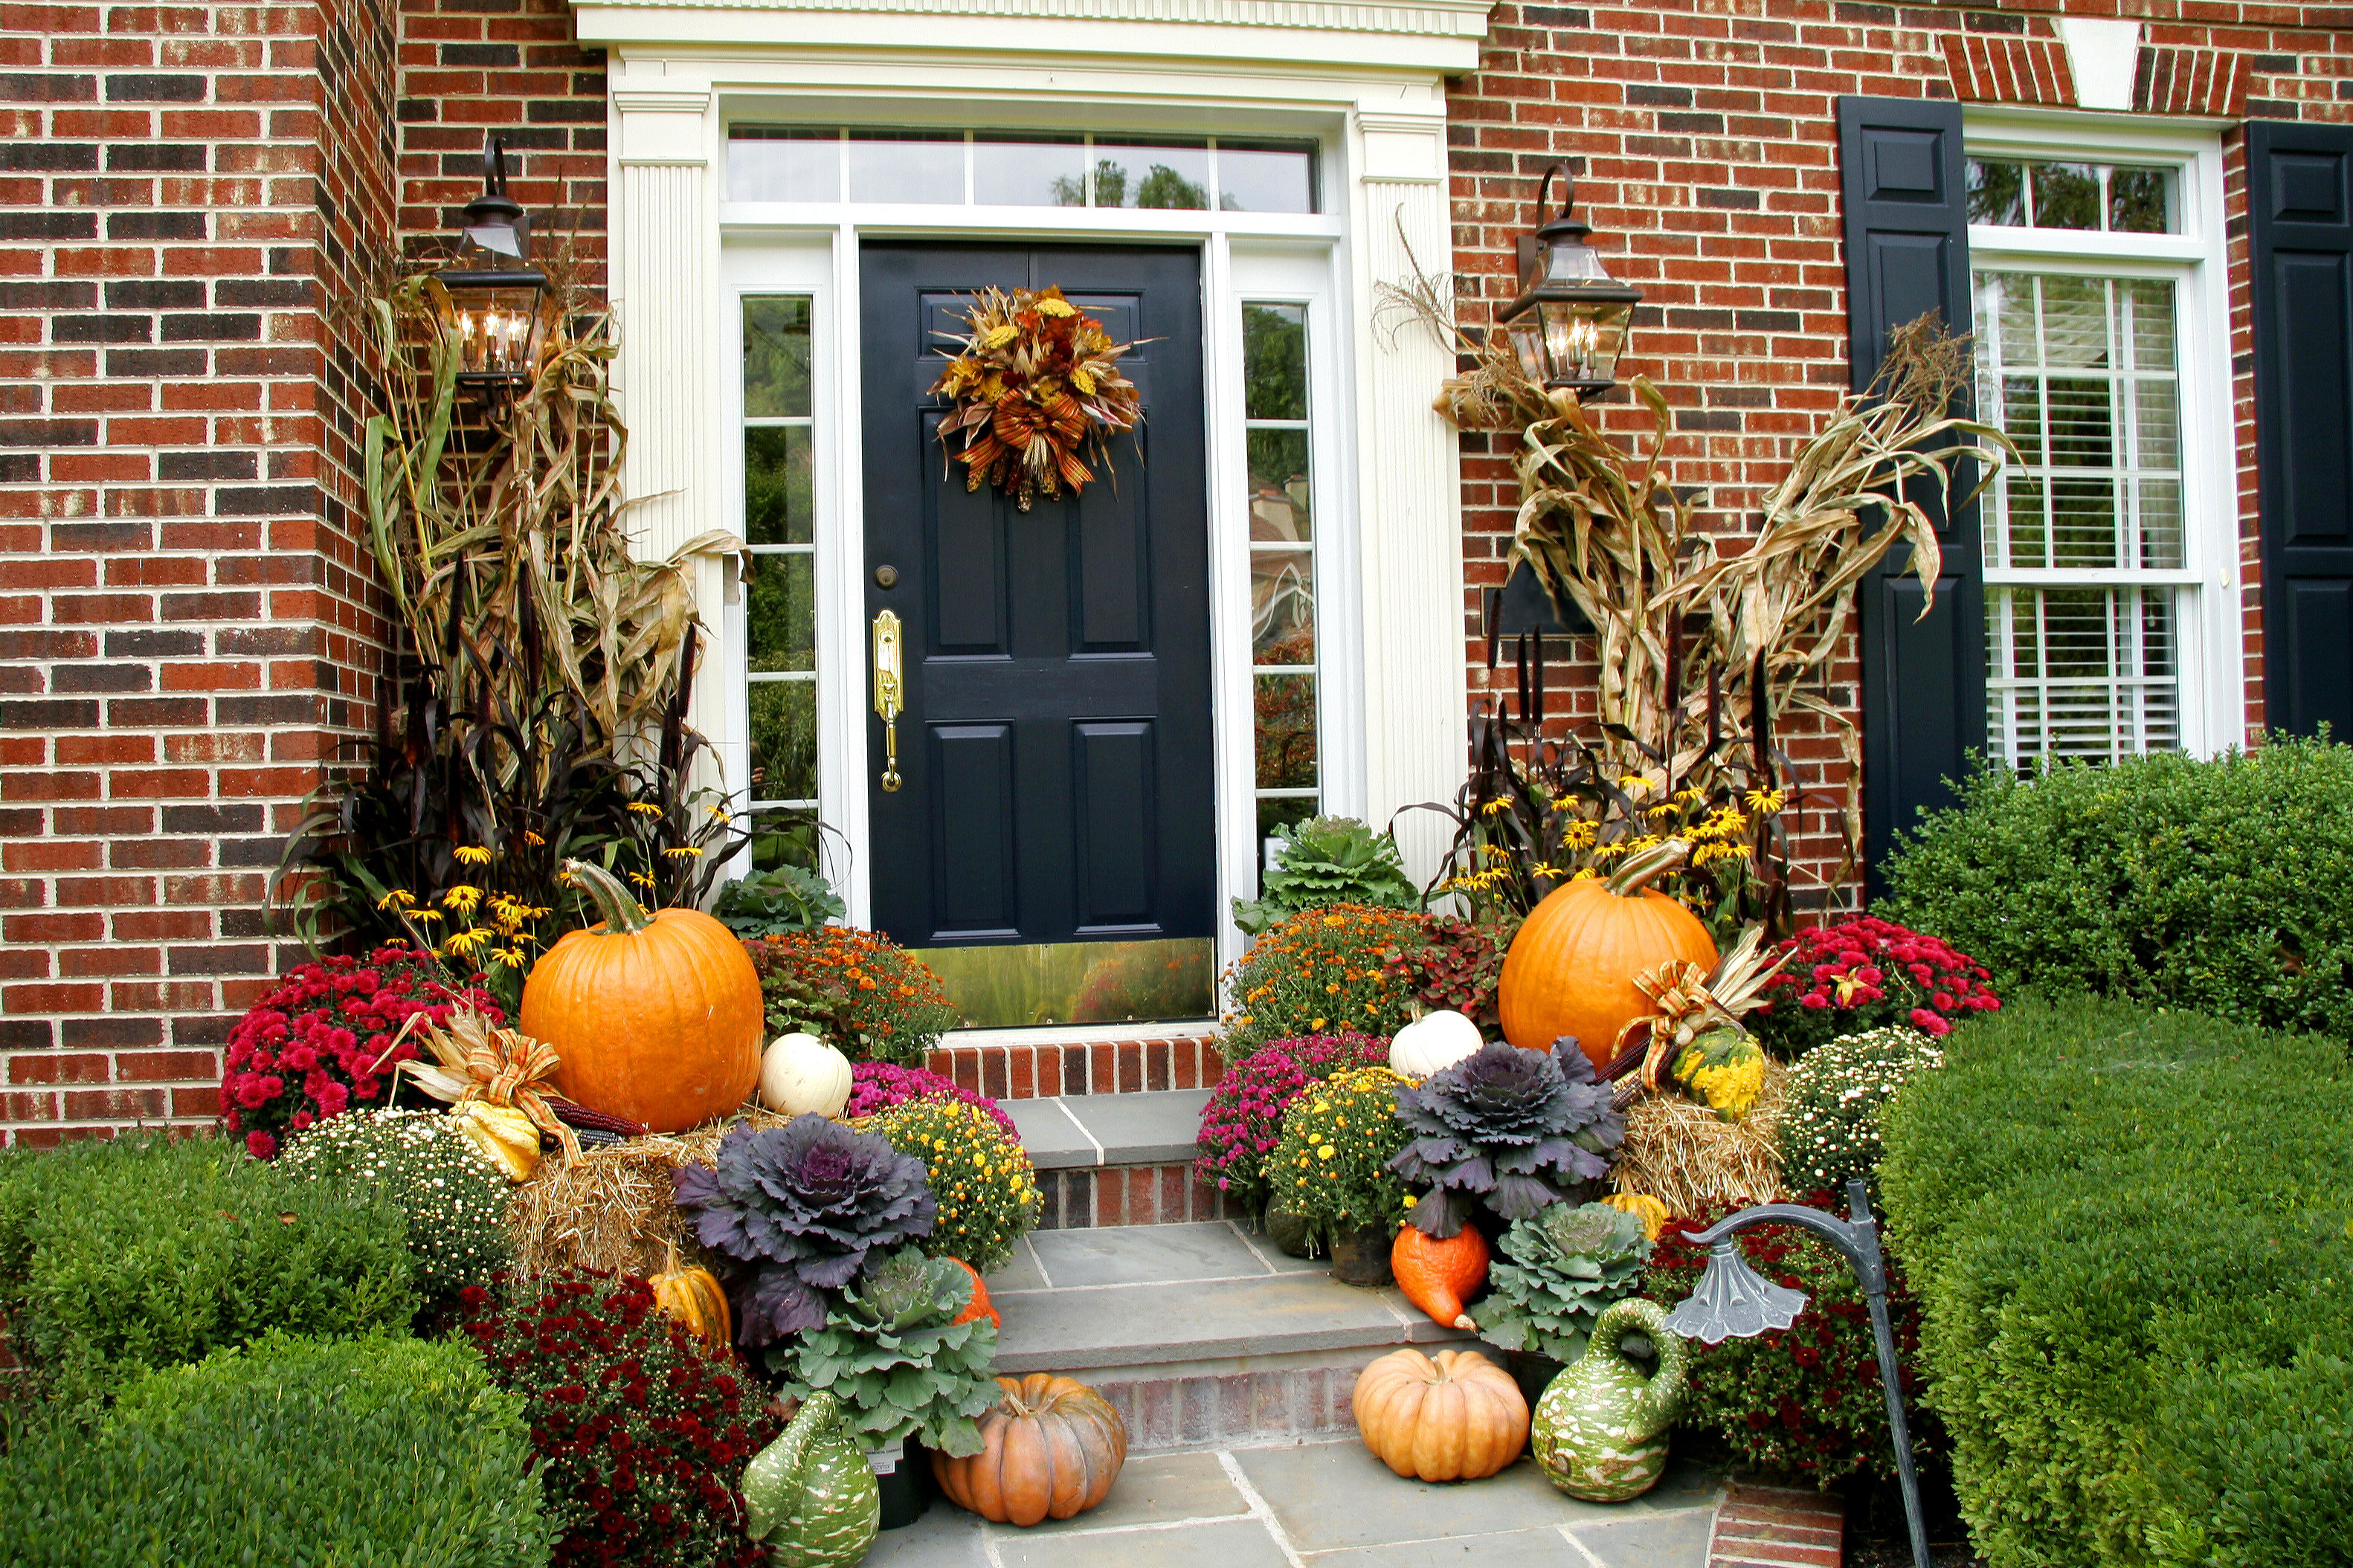 Fall decorating ideas graf growers for Front yard decorating ideas